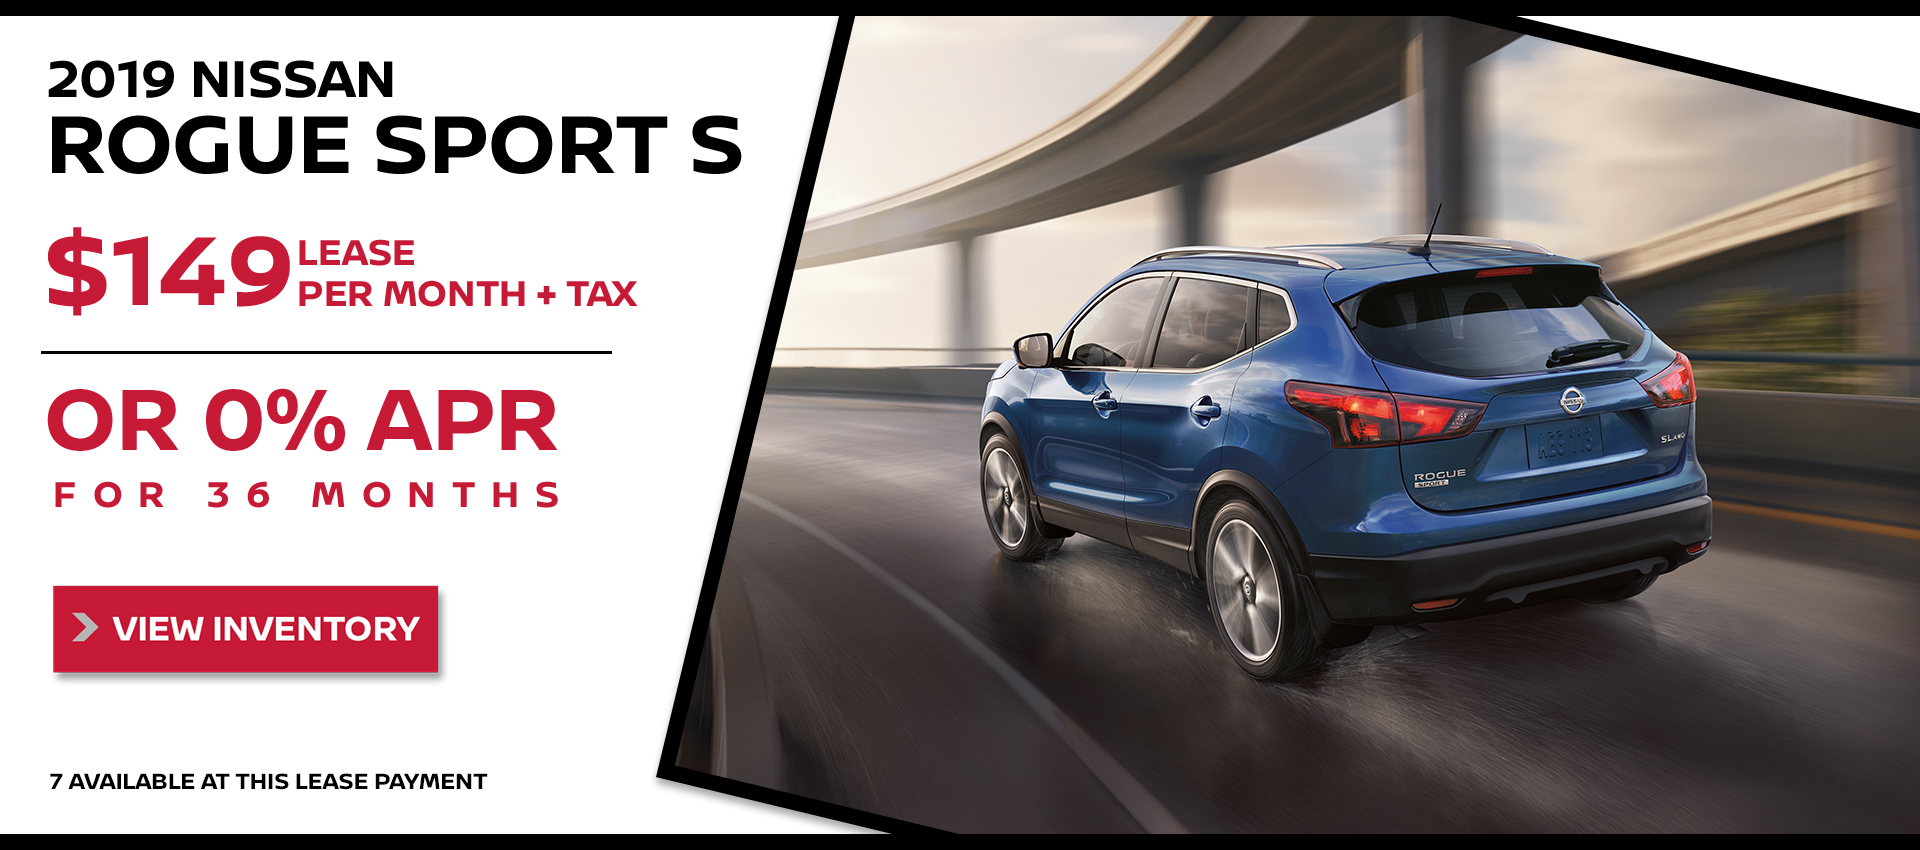 Mossy Nissan - Rogue Sport $149 Lease HP